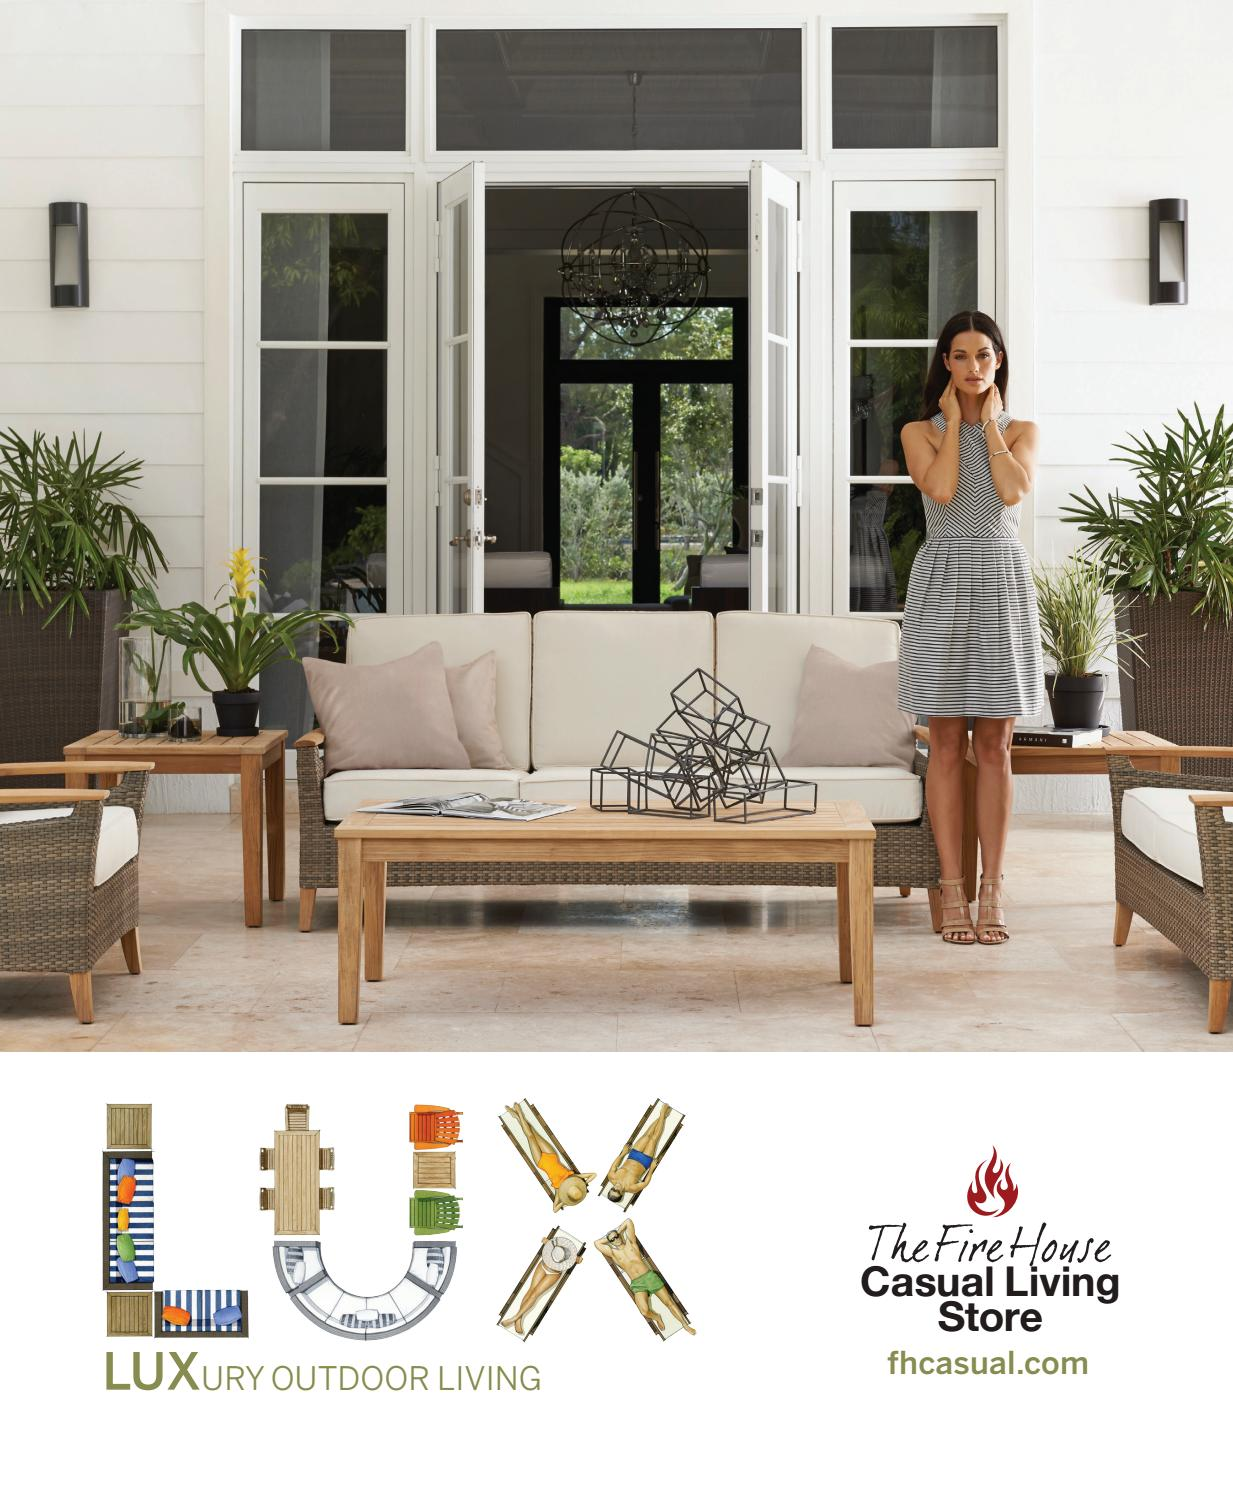 Bon Fire House Casual Living Outdoor Furniture Sale   Spring 2018 Catalog By  Digital Media And Publishing   Issuu